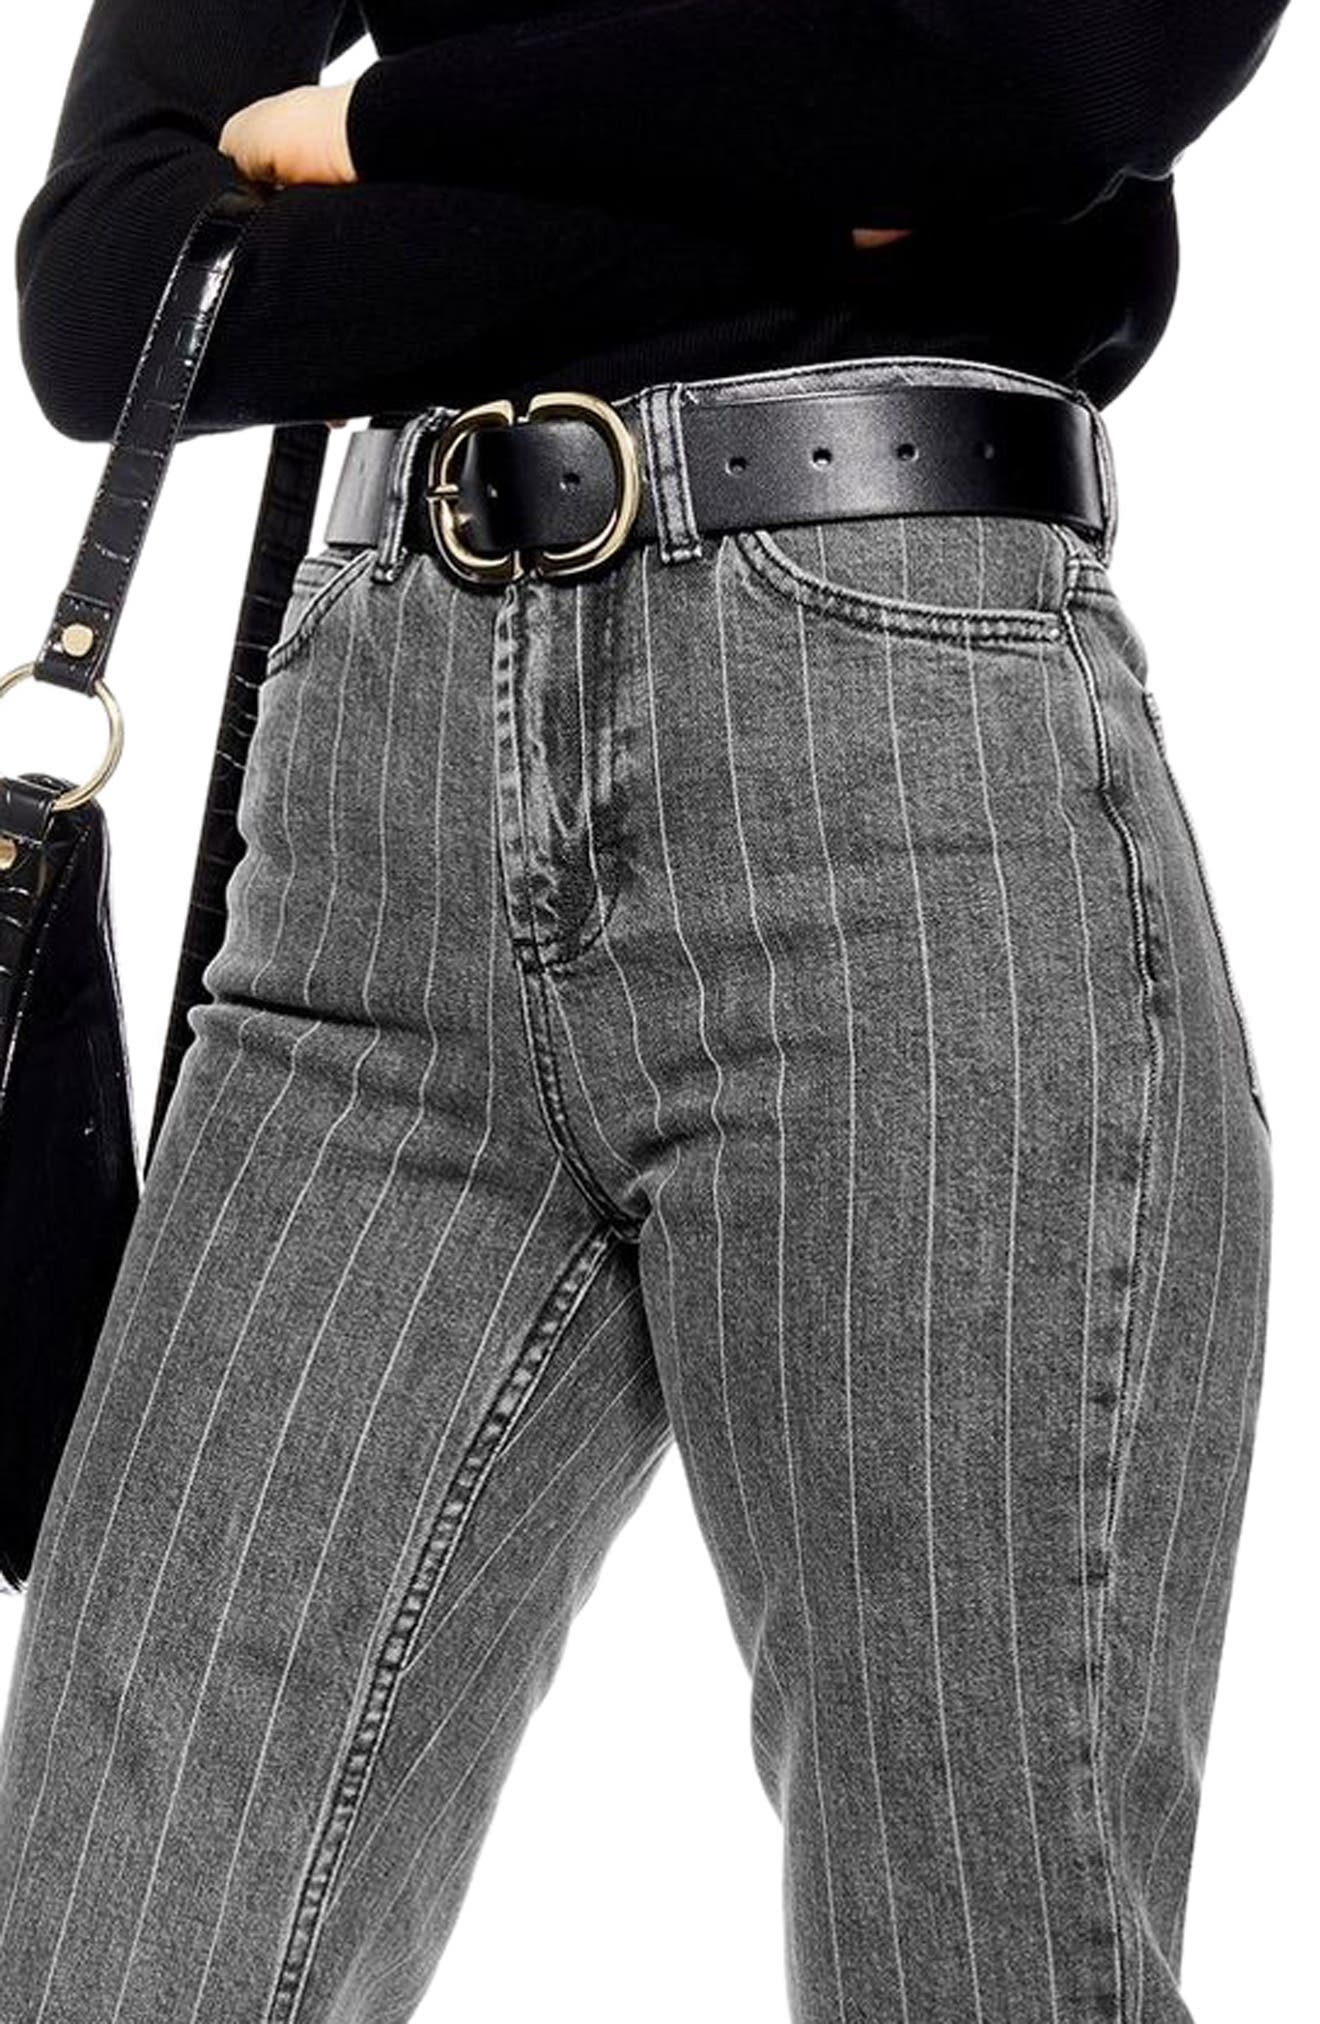 High Waist Pinstripe Jeans,                             Alternate thumbnail 3, color,                             WASHED BLACK